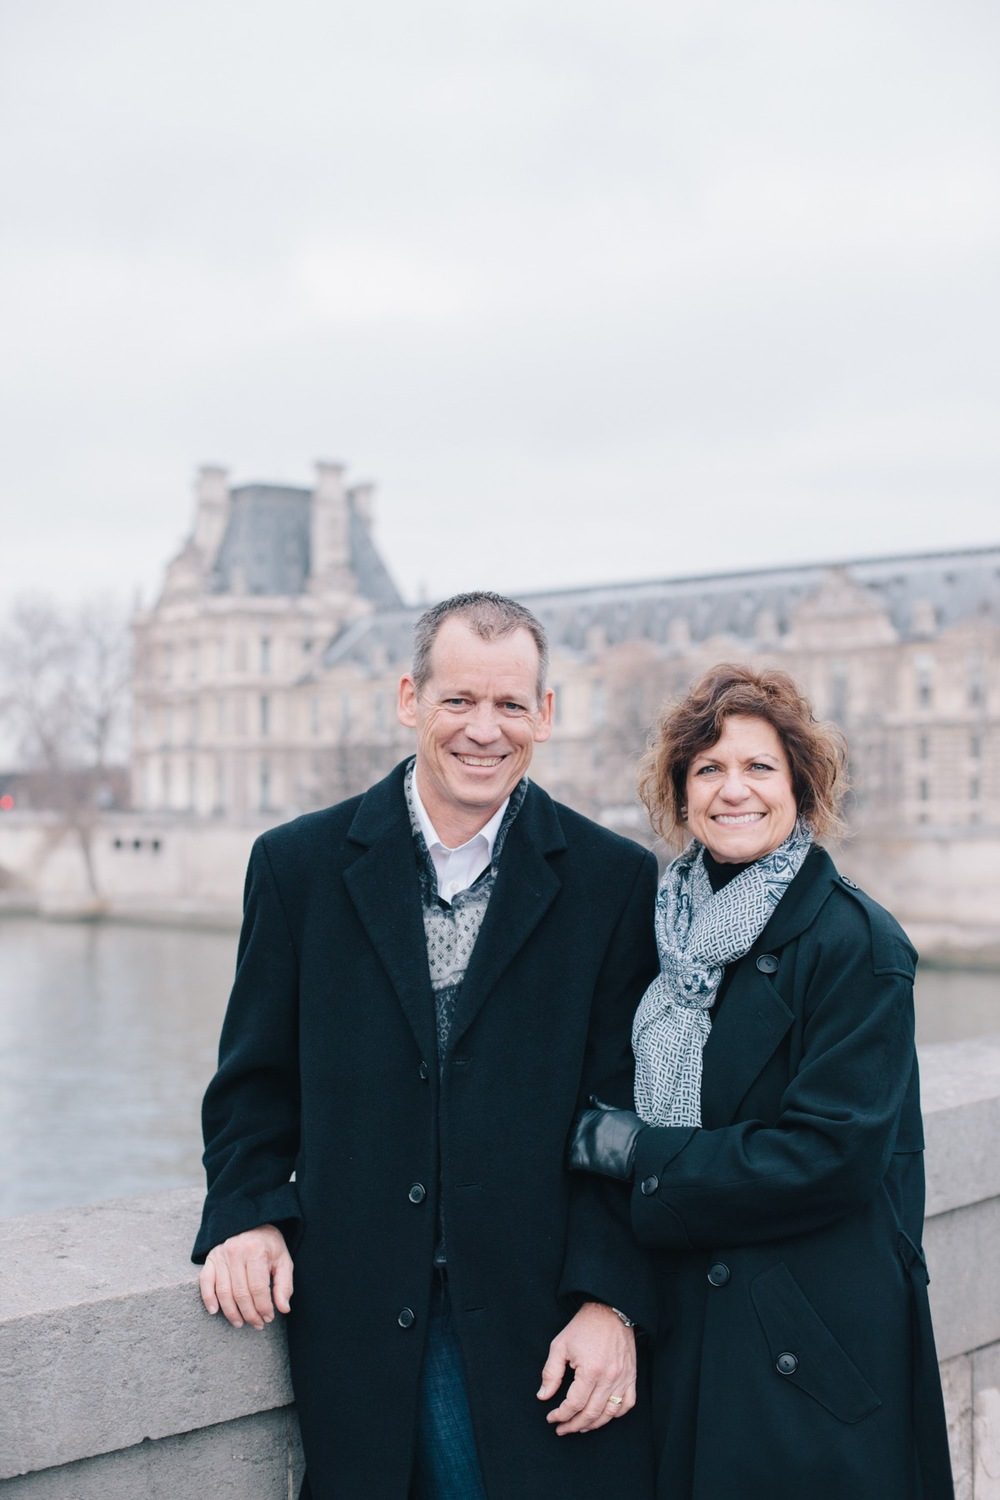 Couples Romantic Vacation in Paris | Paris Vacation Photographer Flytographer